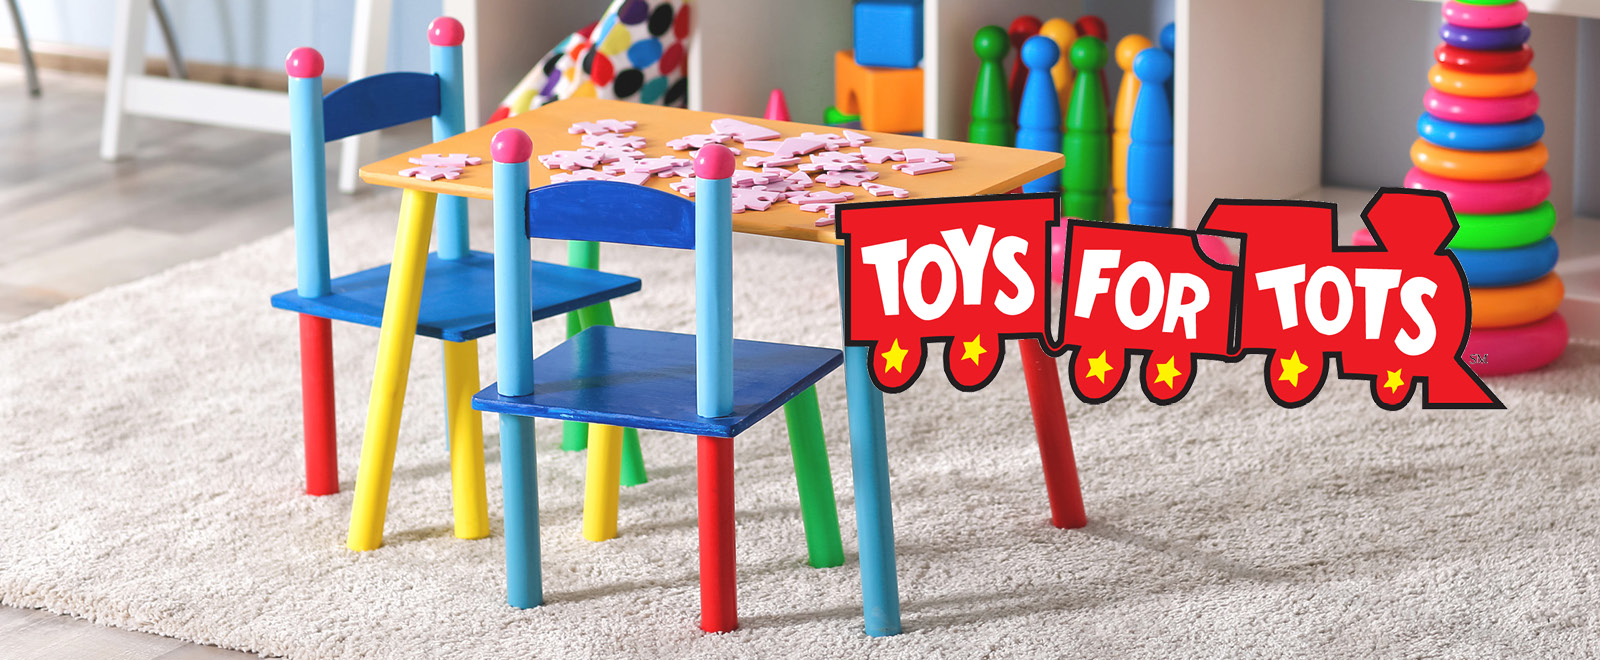 Toys for Tots train logo in playroom with toys